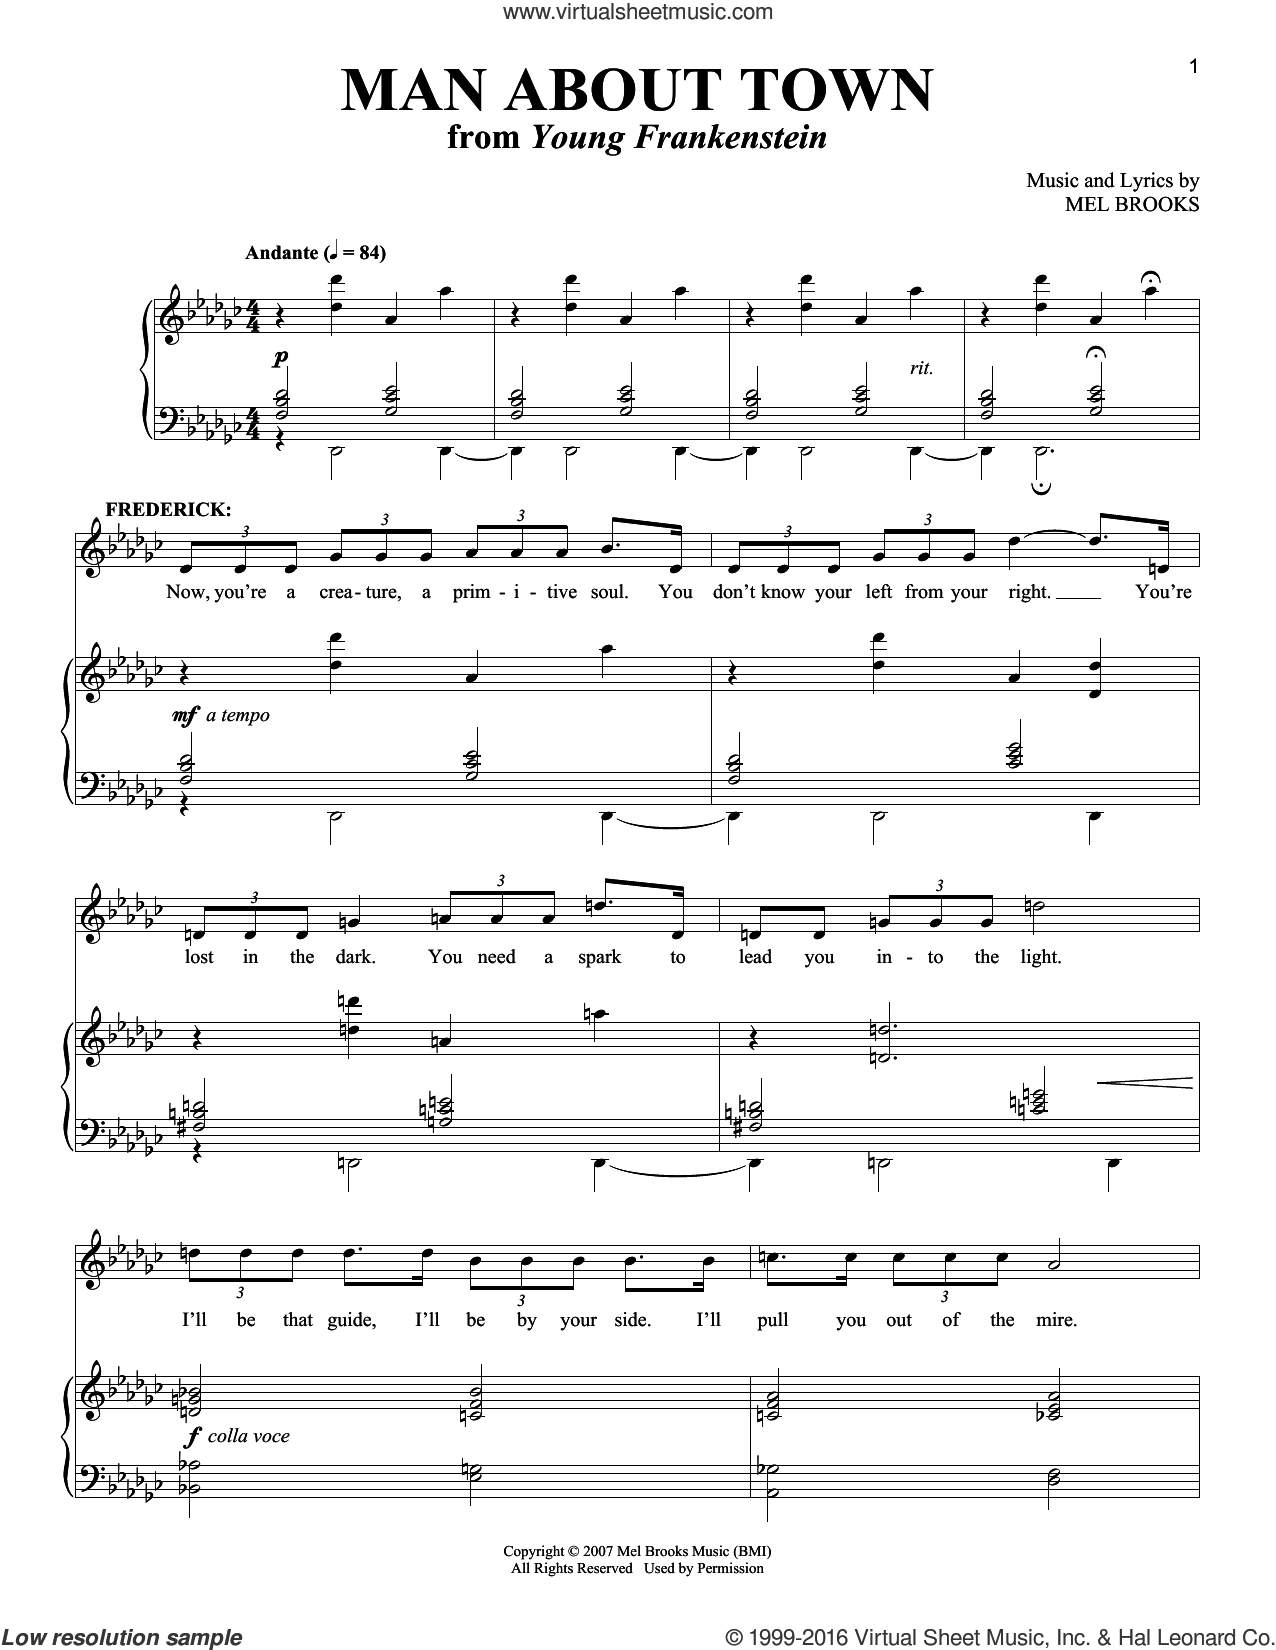 Man About Town sheet music for voice and piano by Mel Brooks and Richard Walters, intermediate skill level